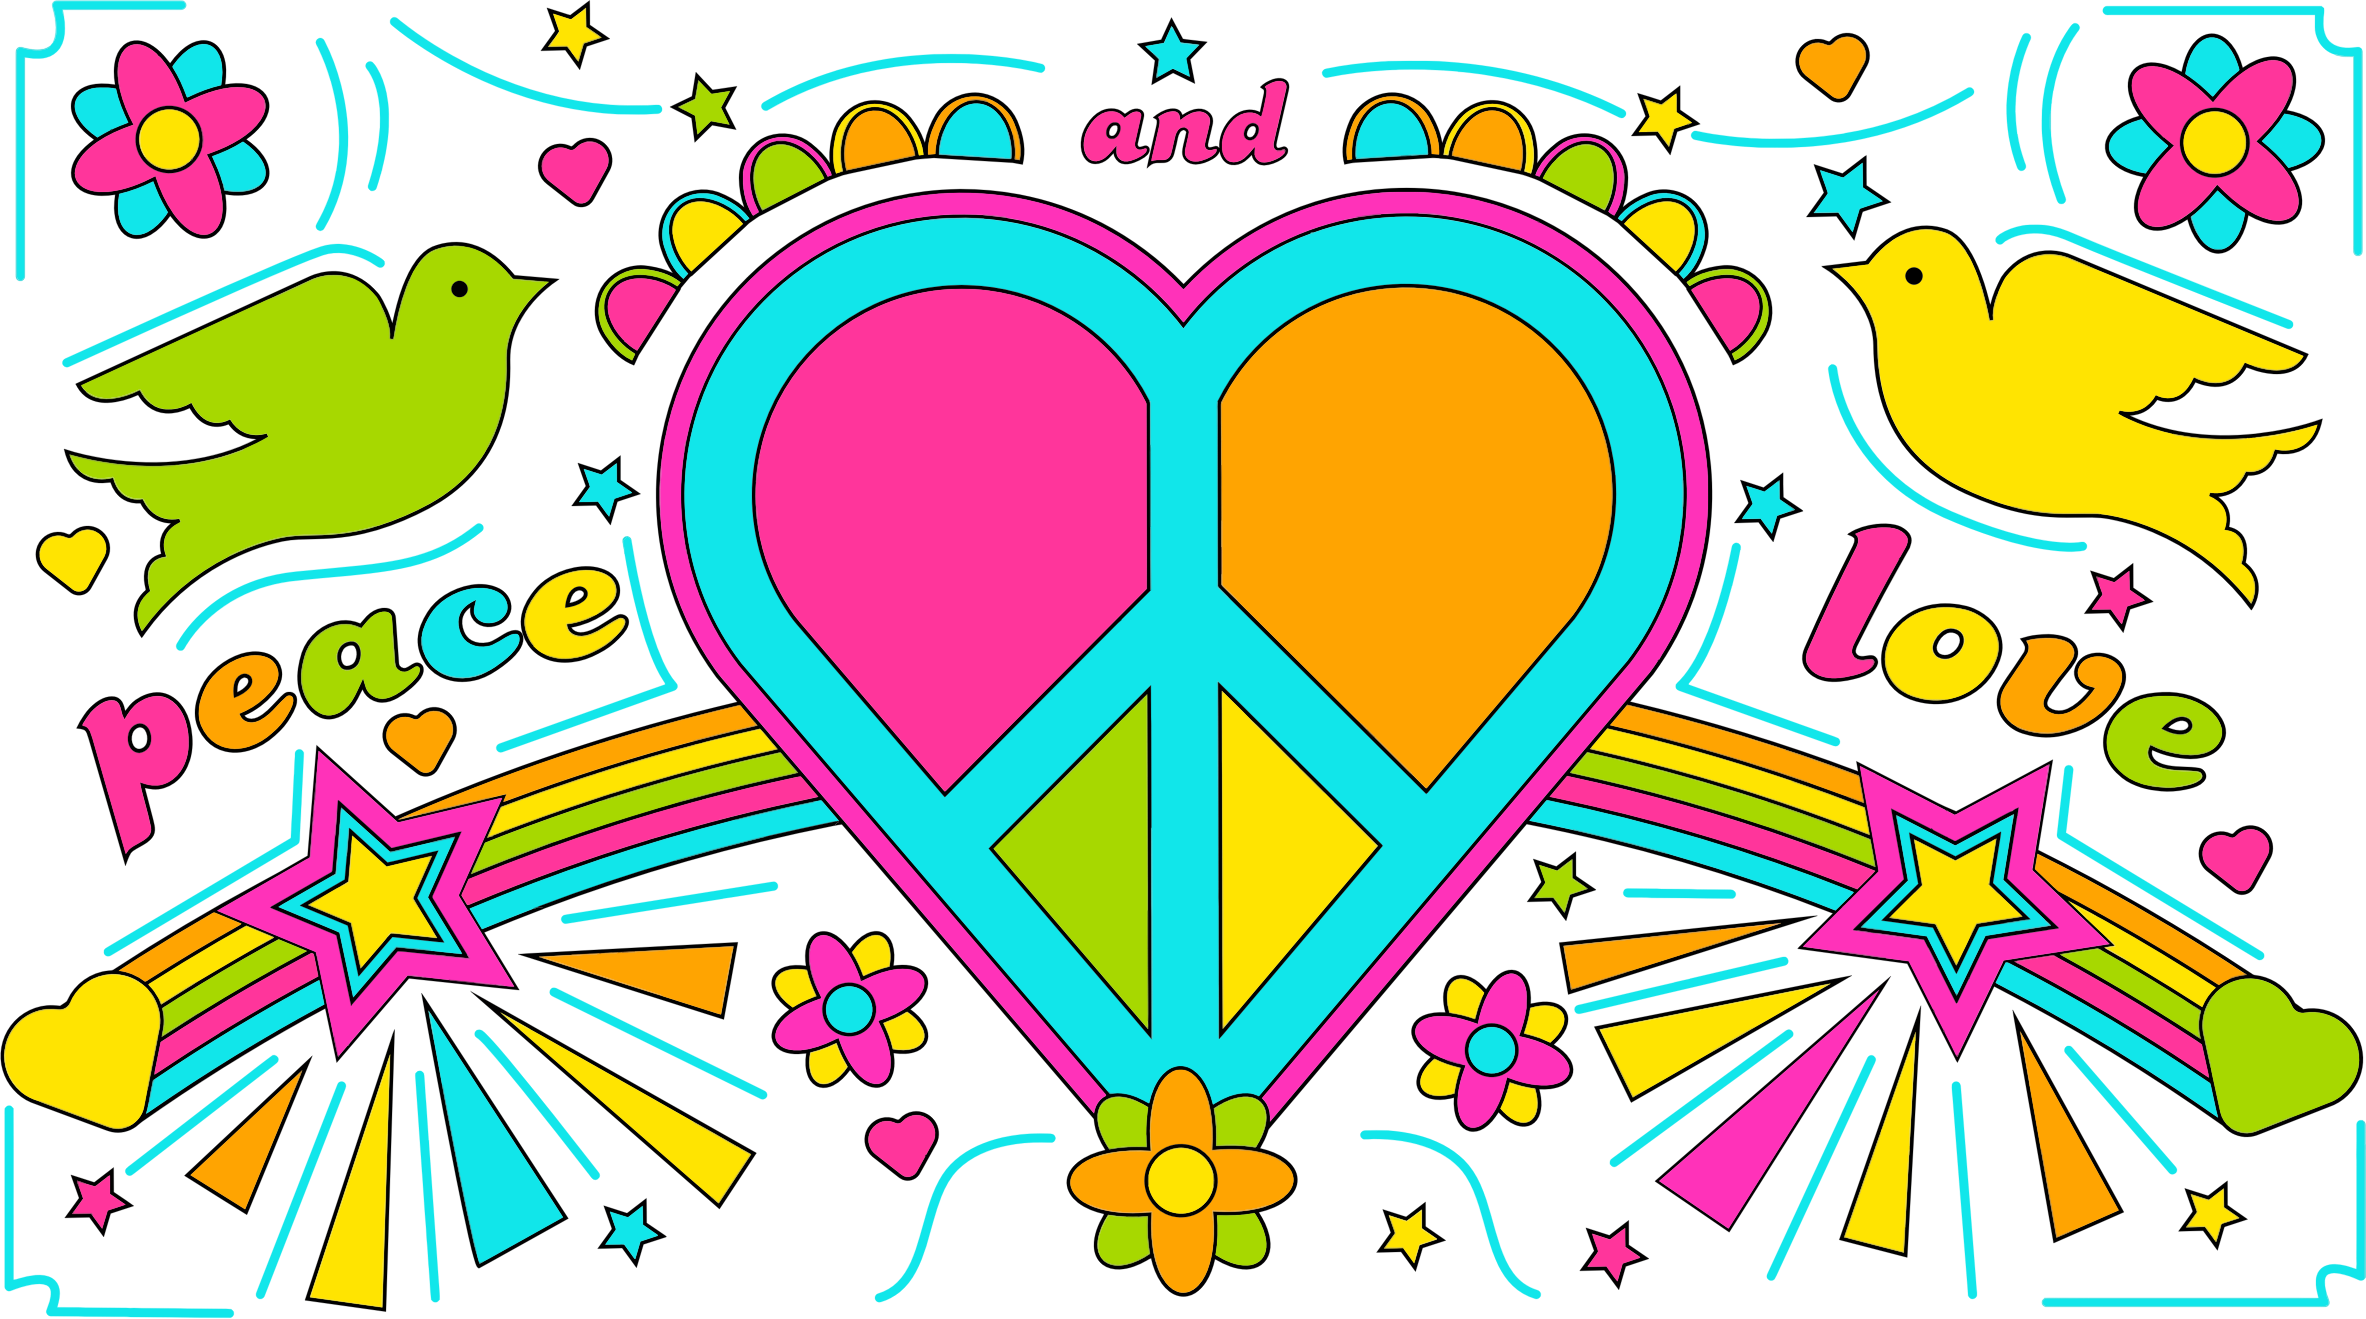 Peace And Love By David Rock Design by GDJ